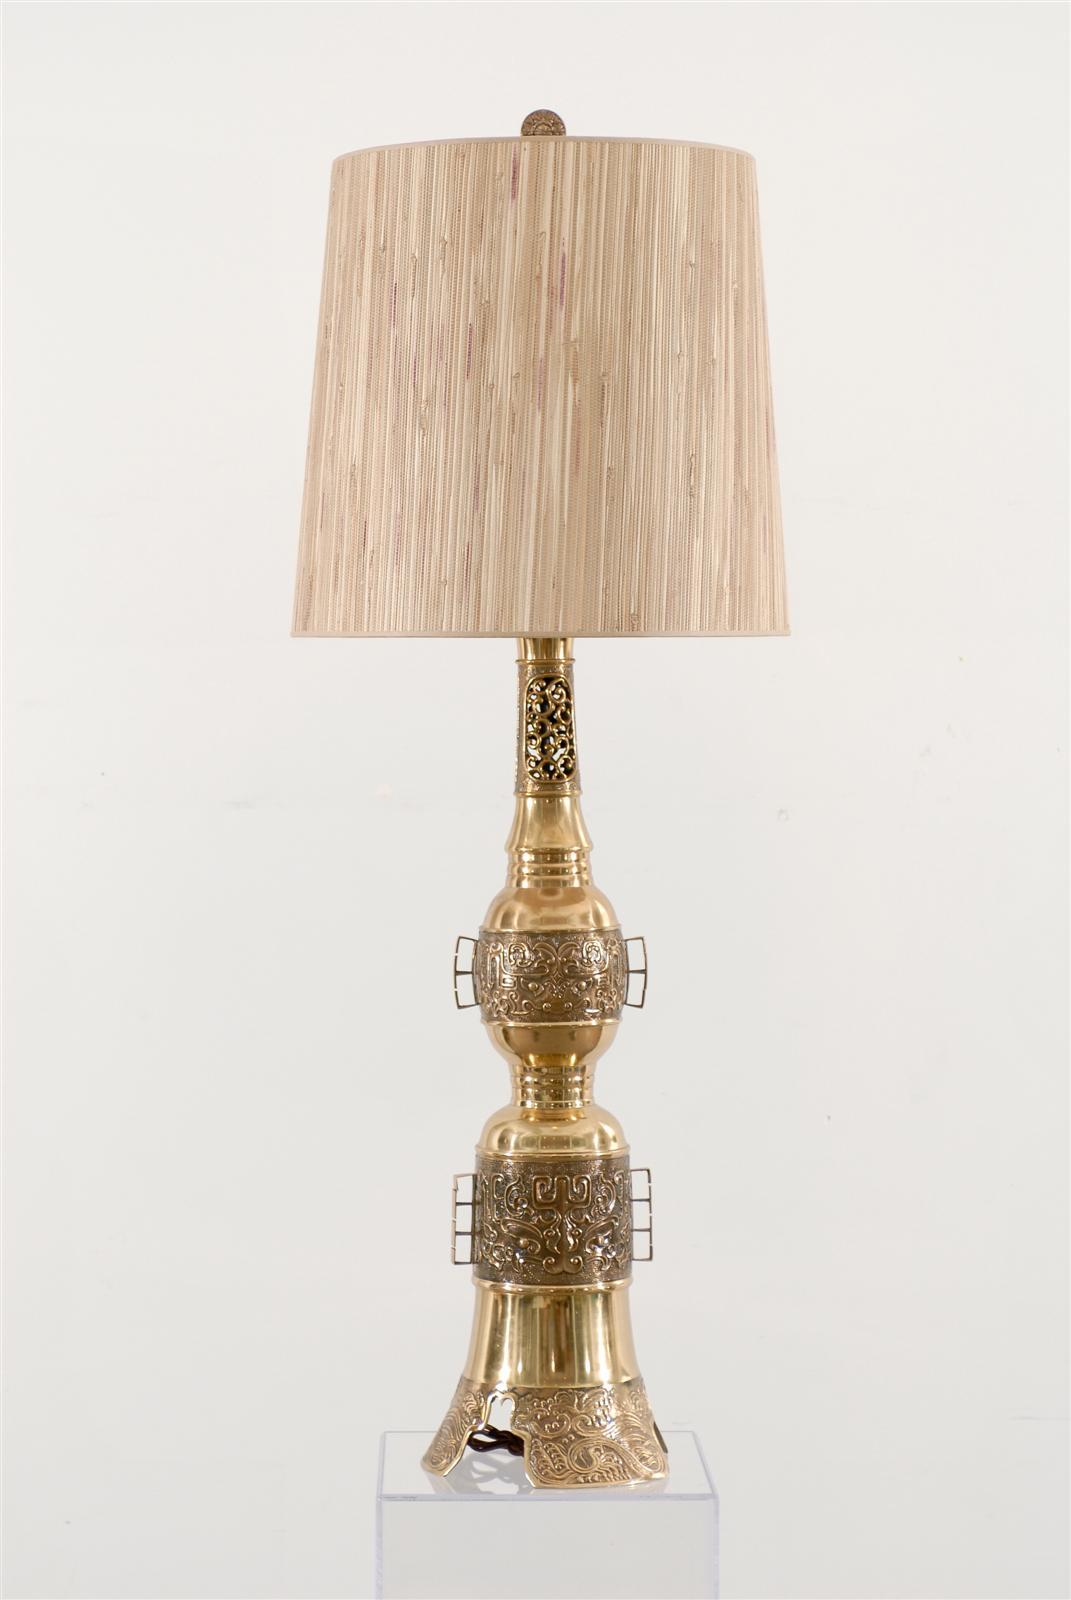 Chic pair of Asian brass lamps and finials in the John Mont style rewired with brown silk cording.